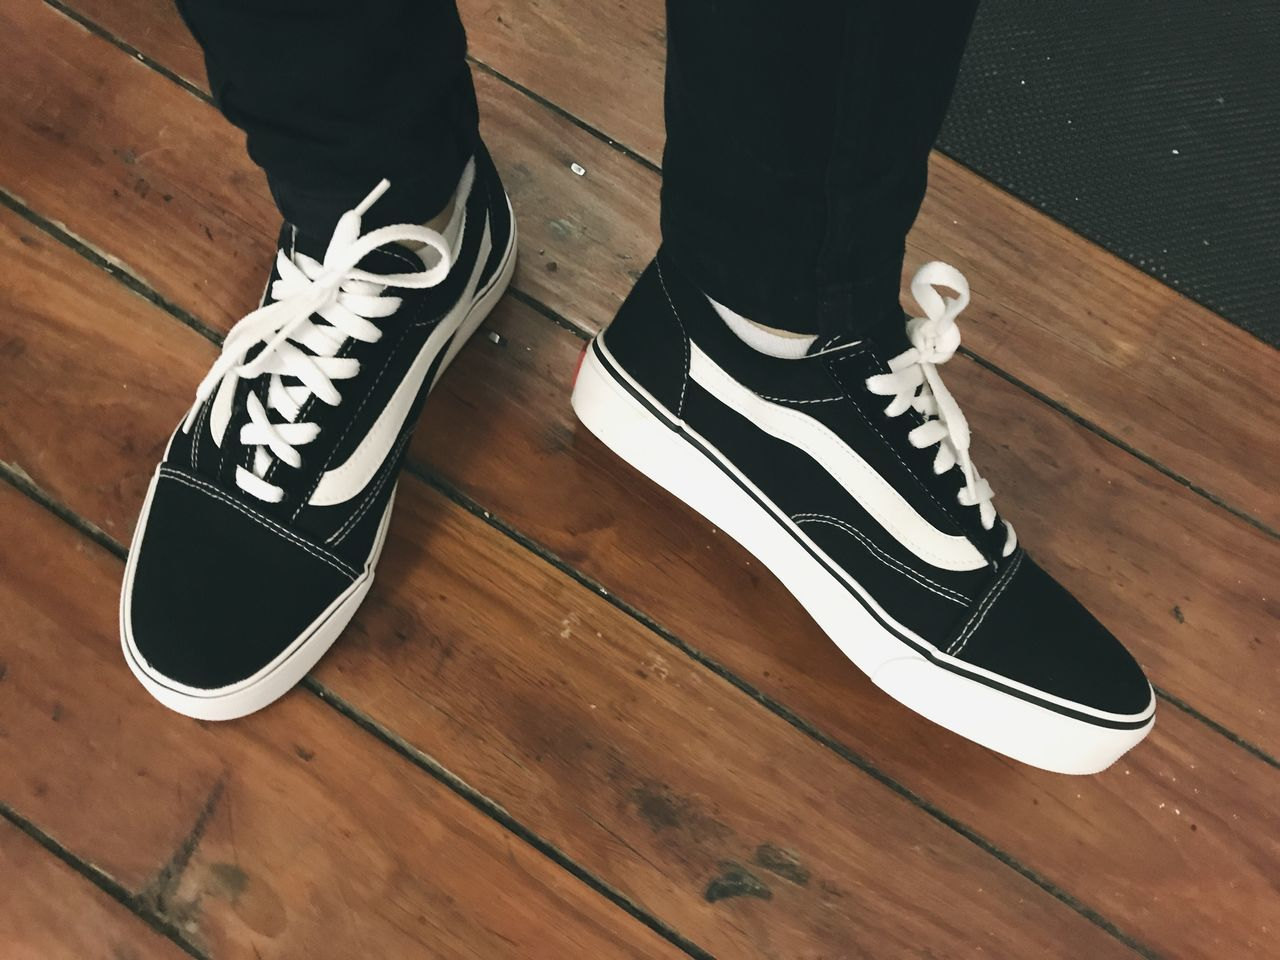 Vans Vans Off The Wall Shoe Woodenfloor High Angle View Newshoes